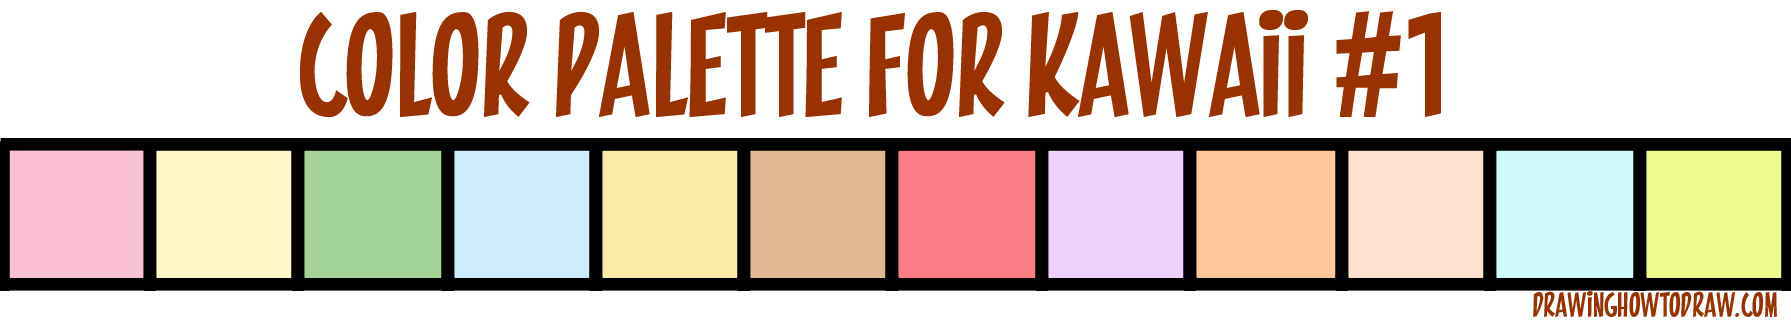 What Colors Are Used in Kawaii Style? Here is a Kawaii Style Color Palette